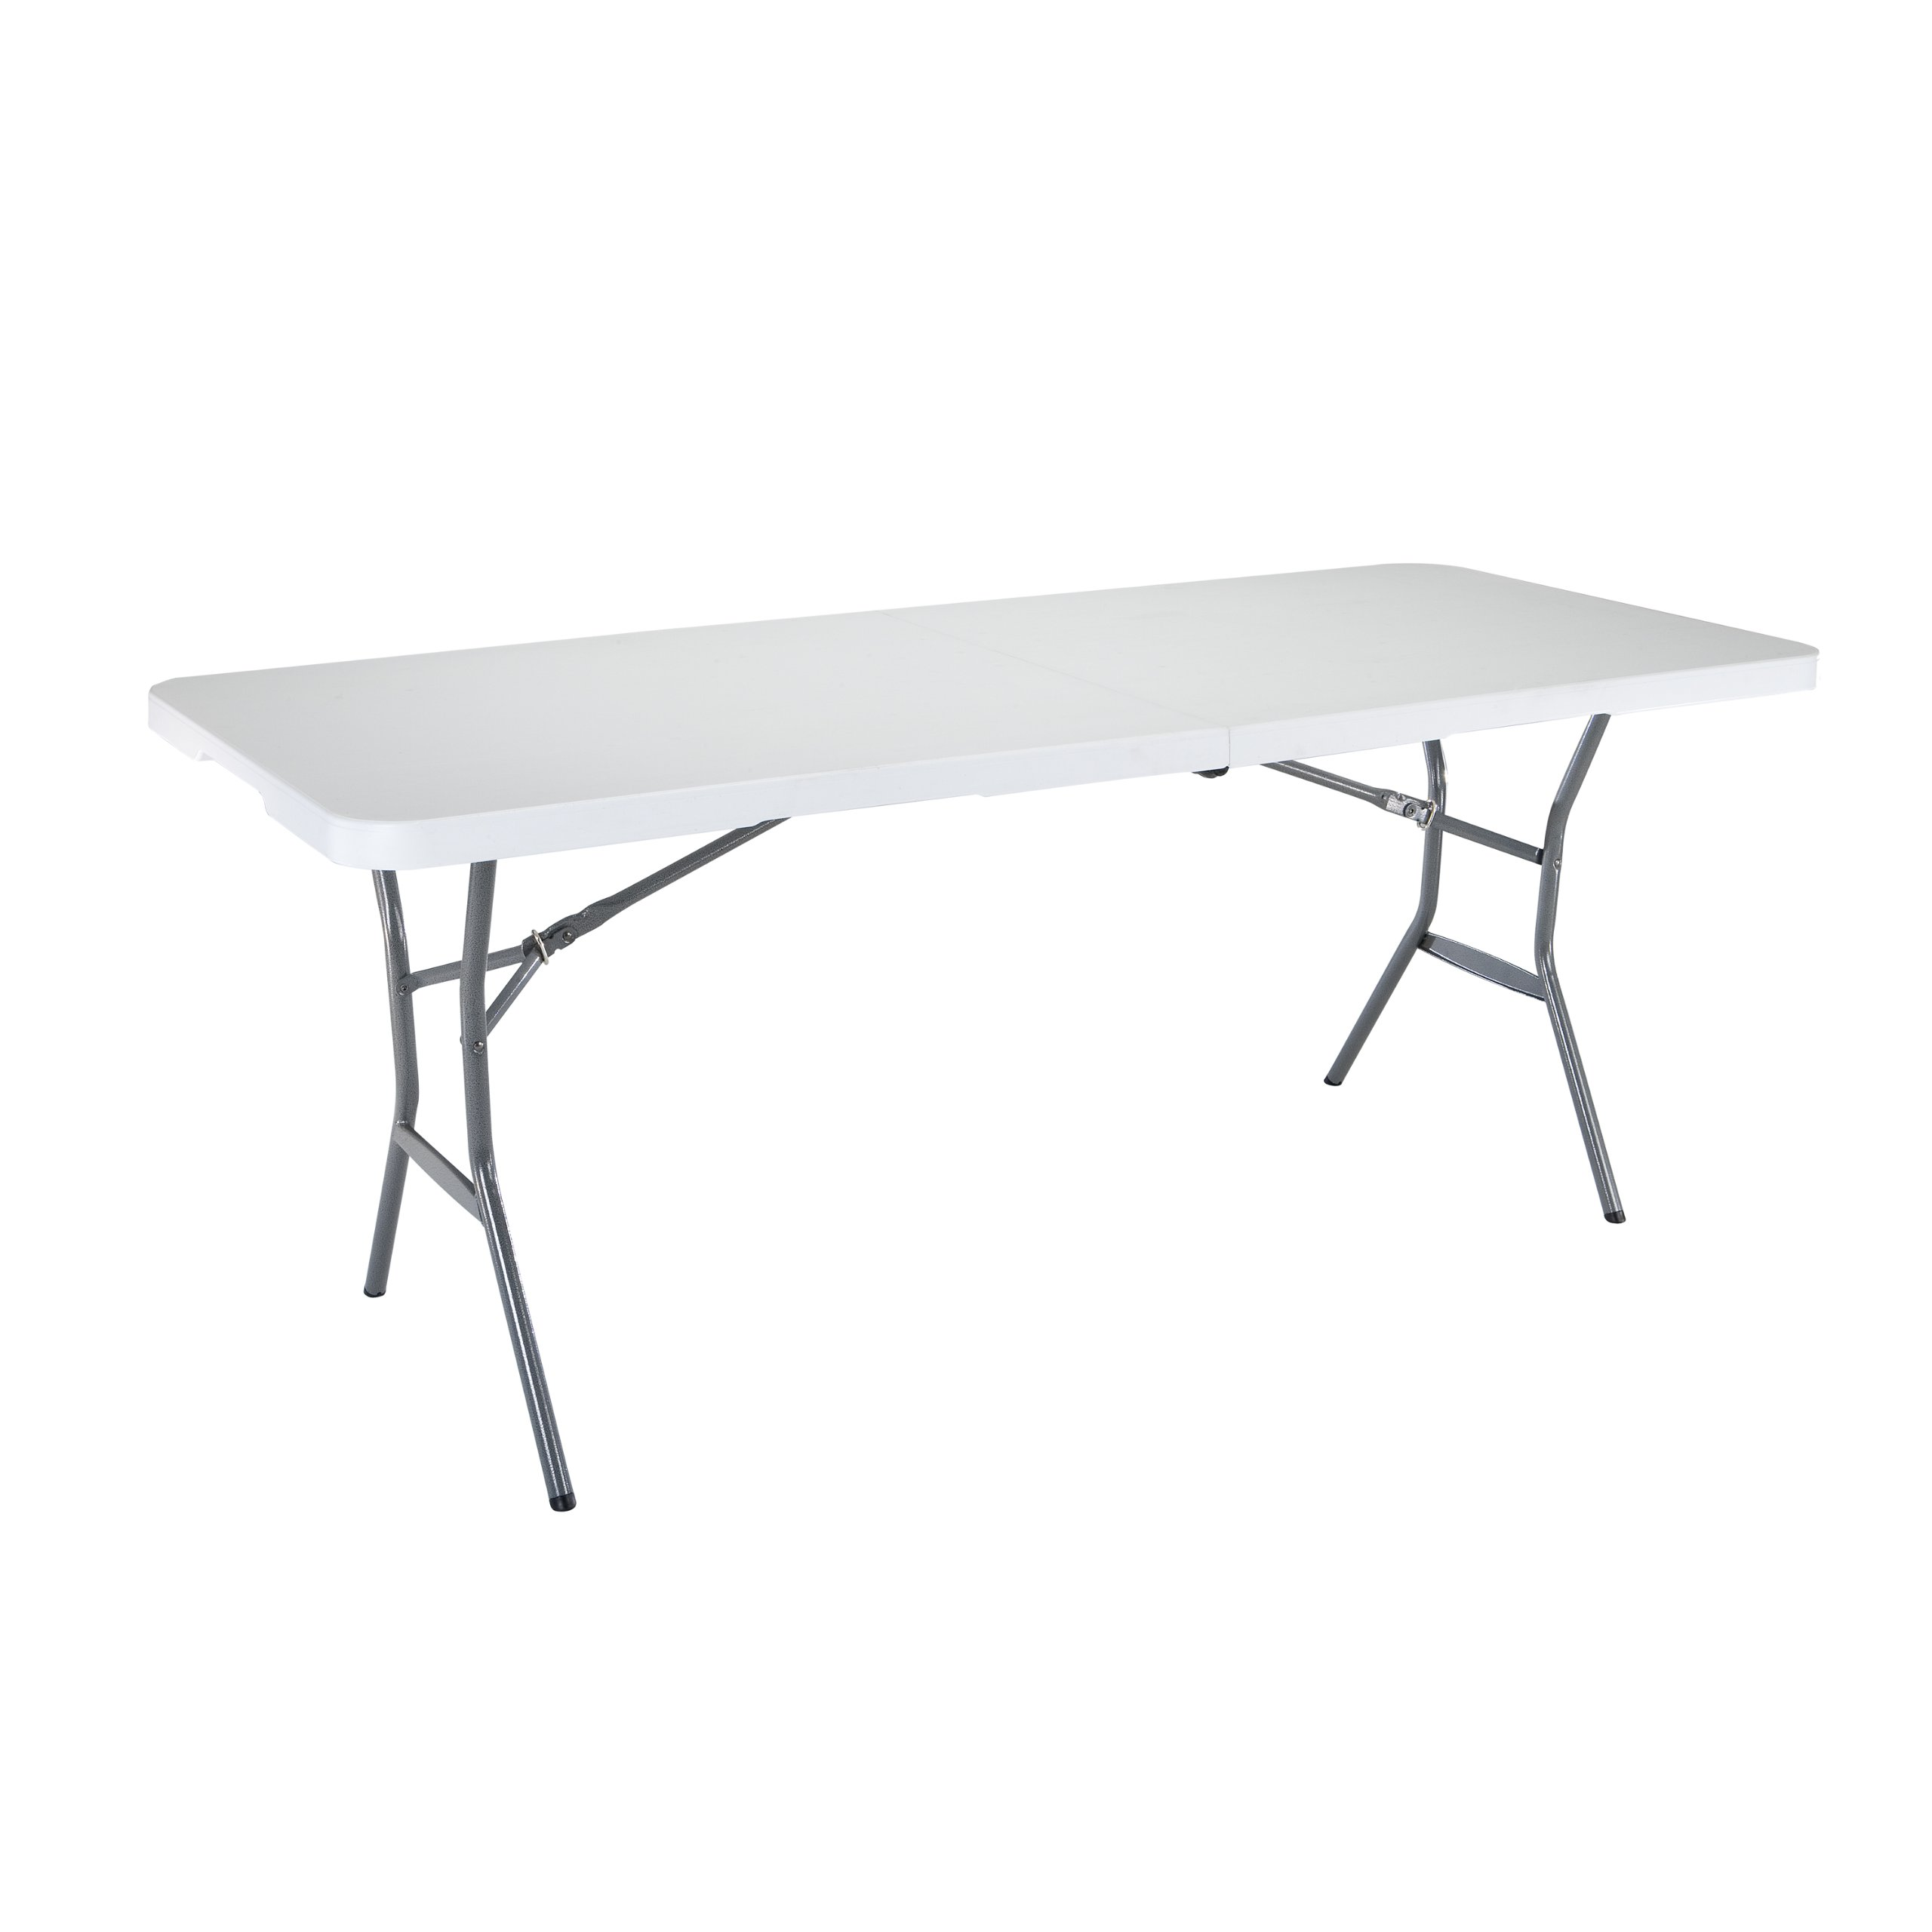 6-Foot Fold-In-Half Commercial Table